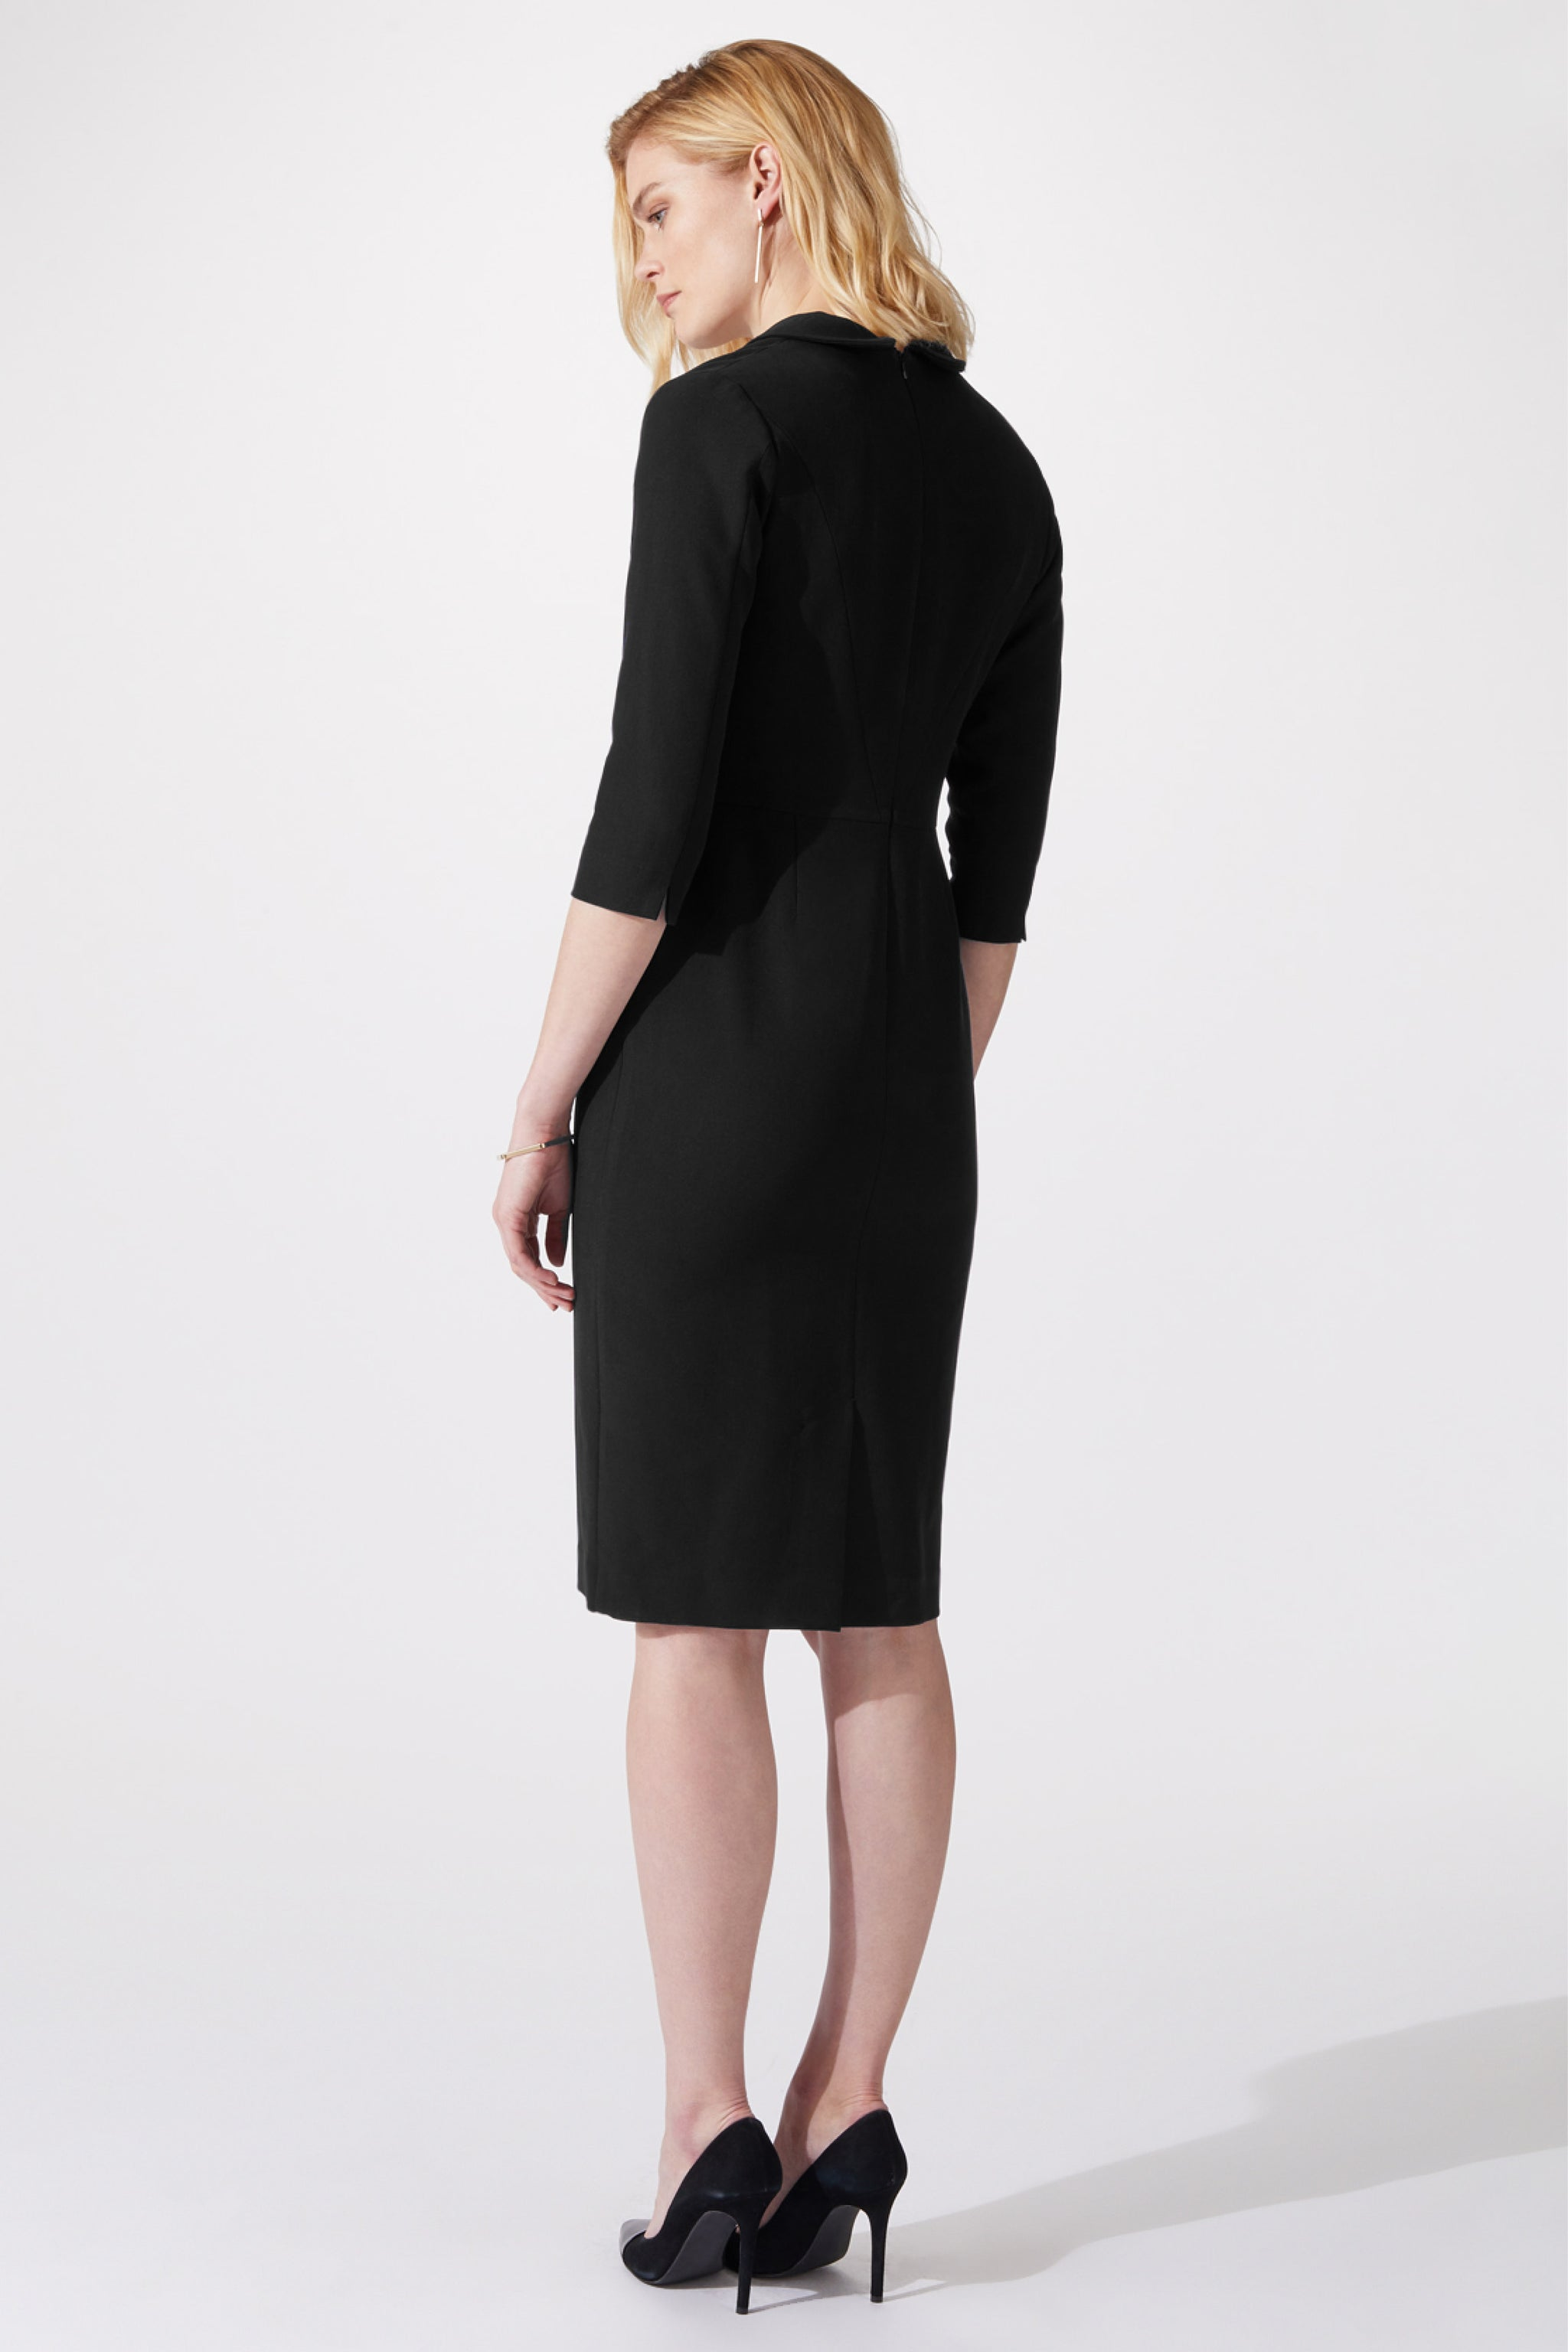 Oxford Black Dress